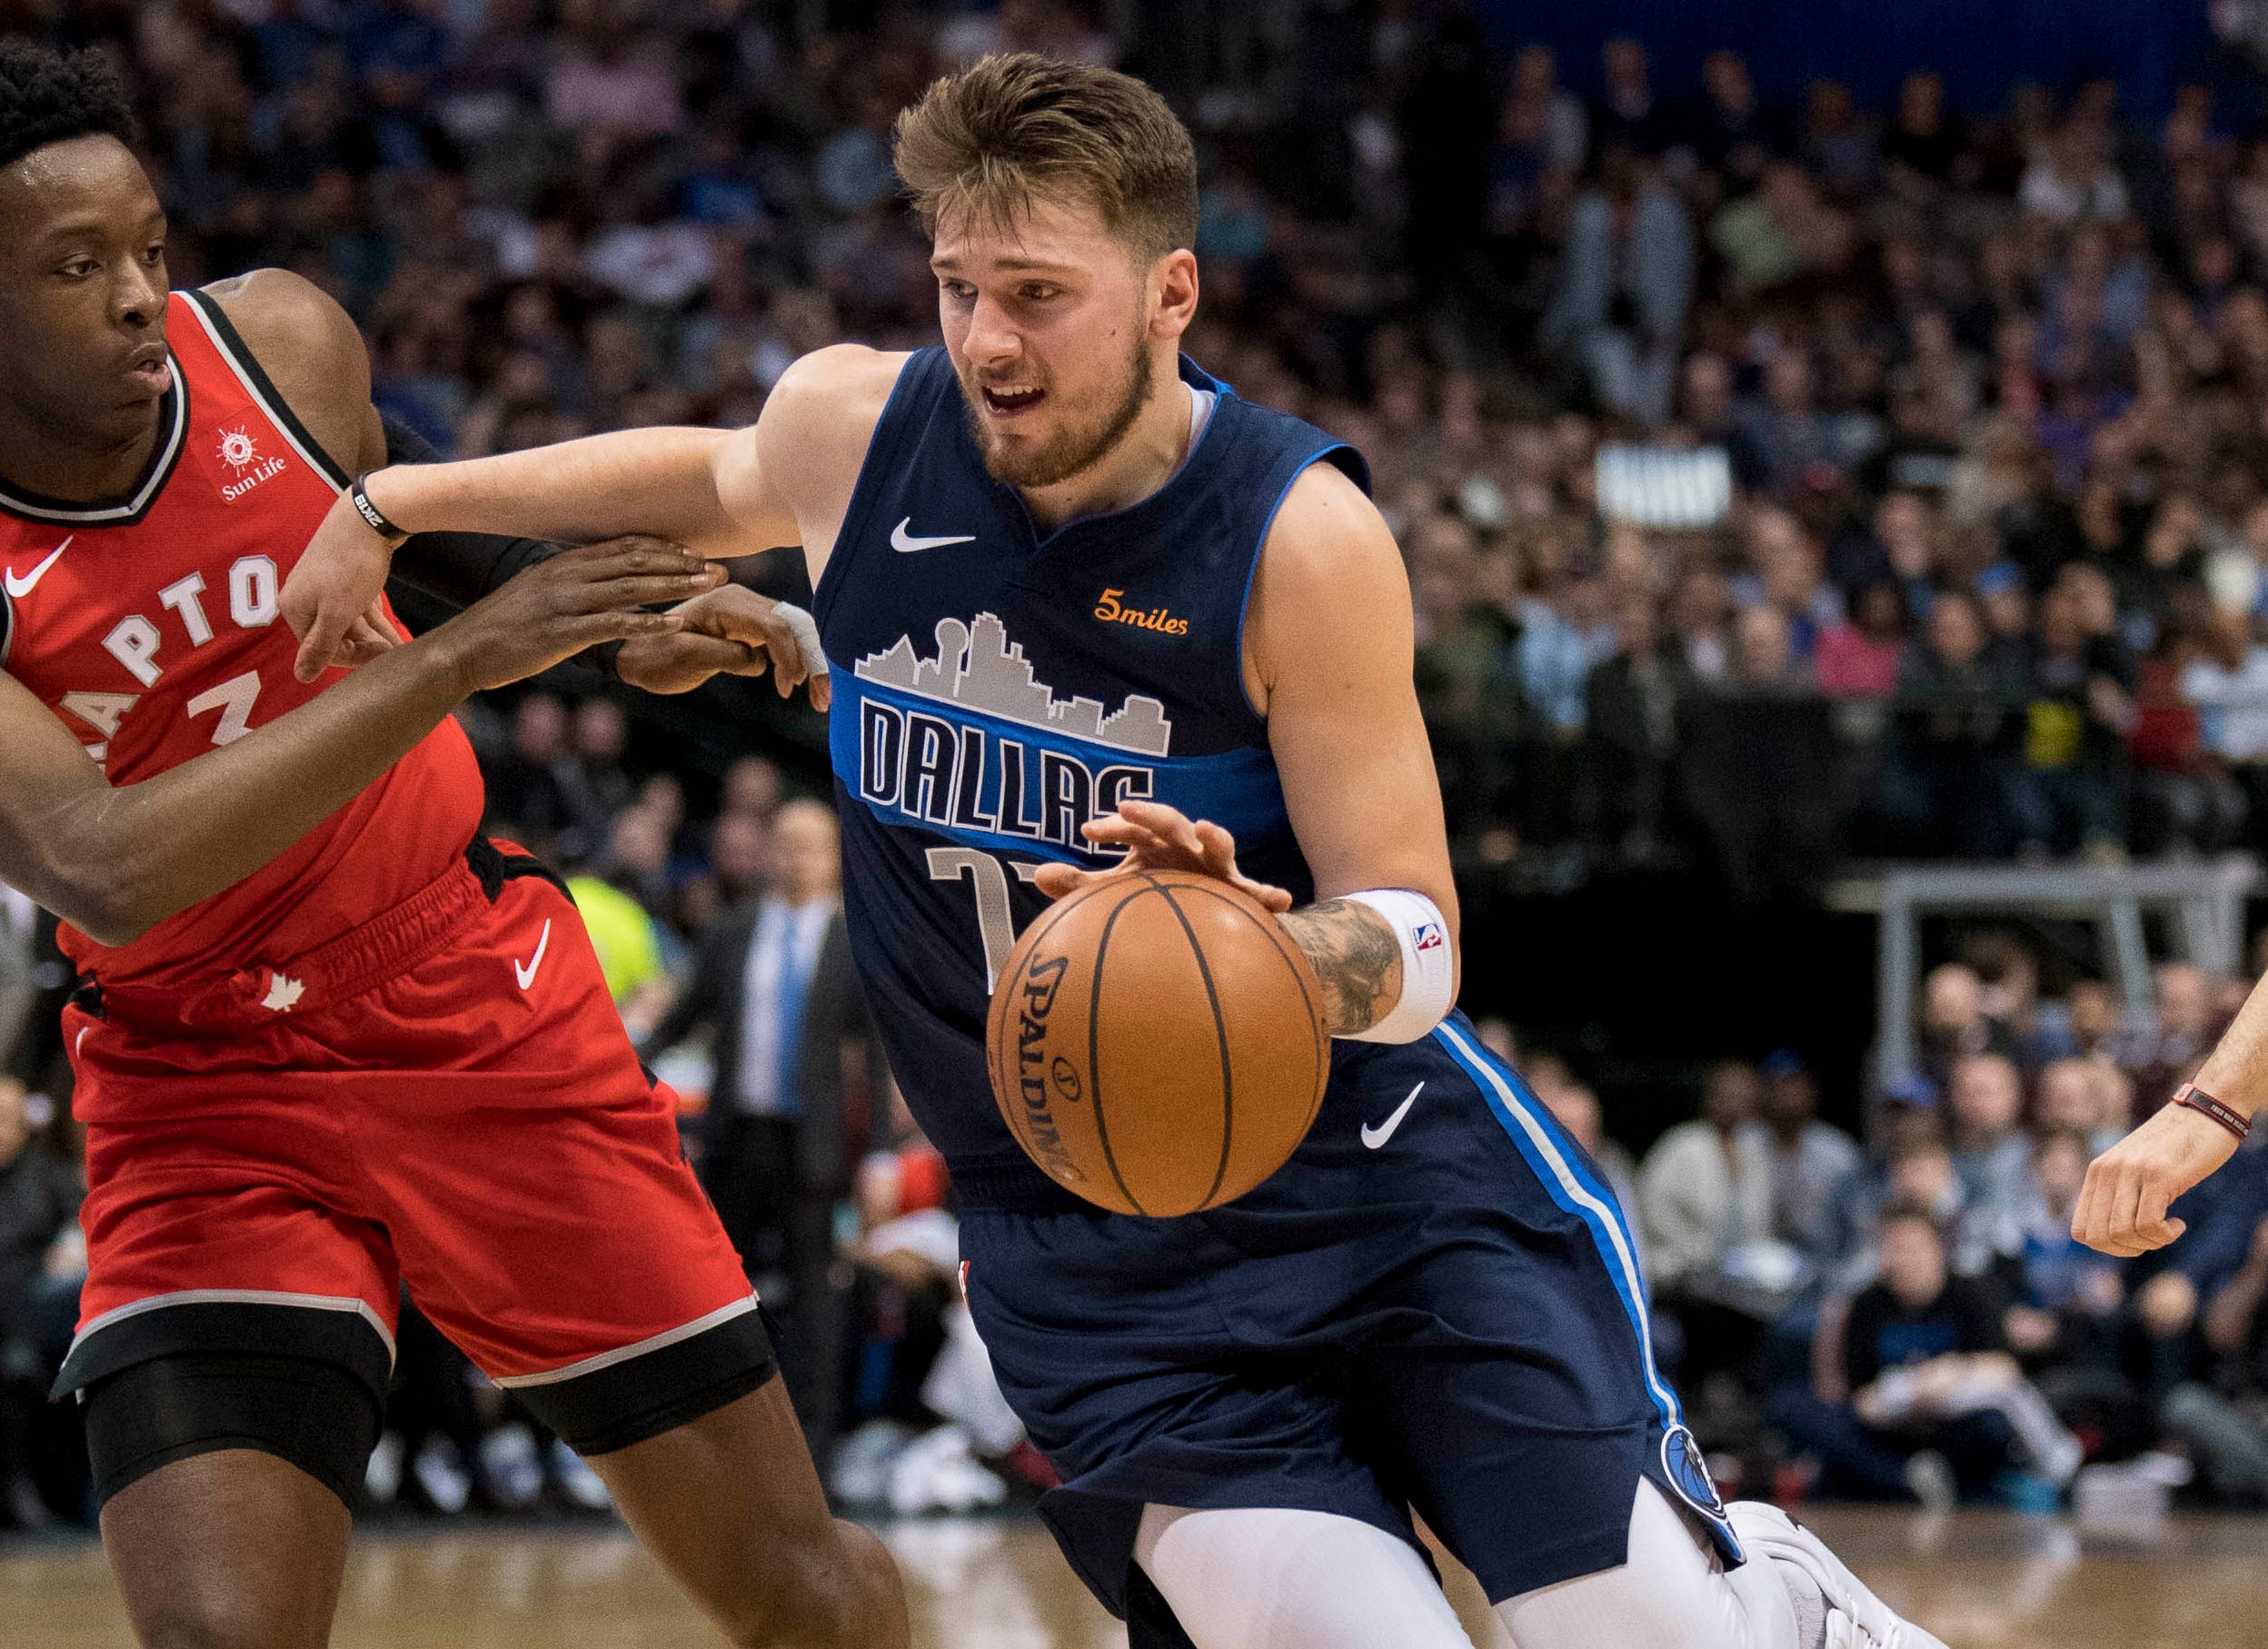 66. Luka Doncic, Mavericks (Jan. 27): 35 points, 12 rebounds, 10 assists in 123-120 loss to Raptors (second of season).